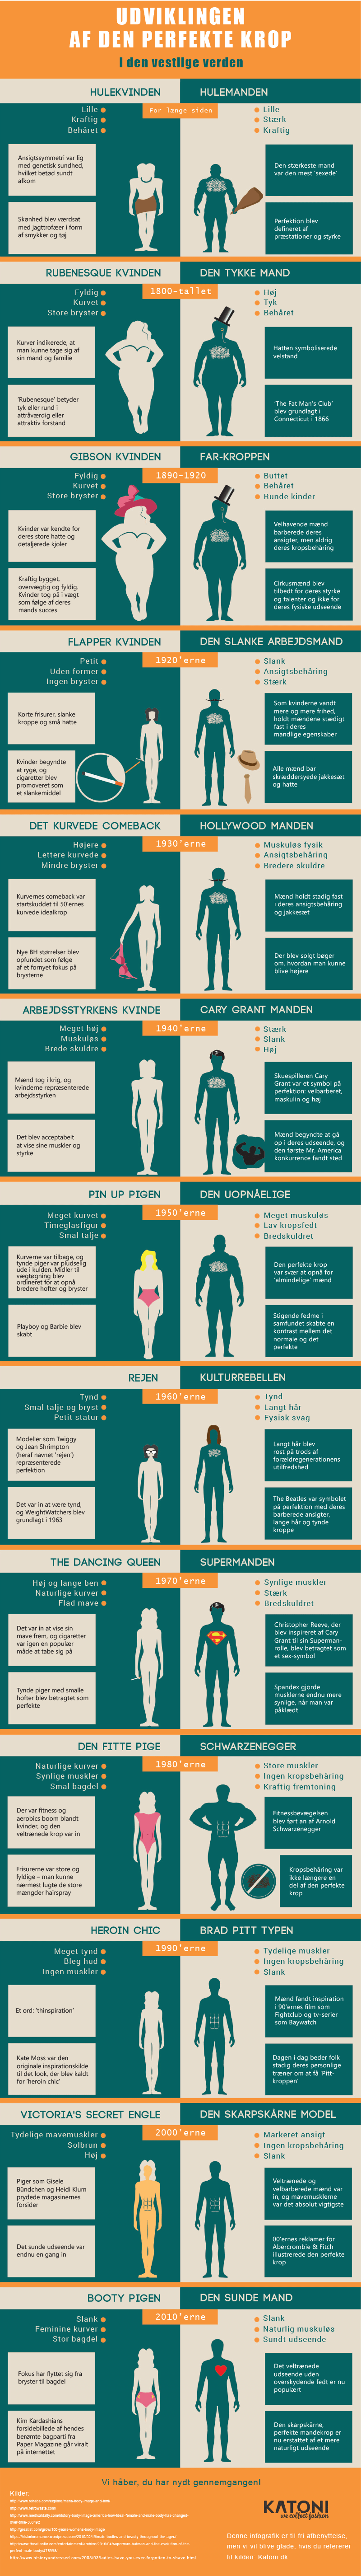 the-evolution-of-the-perfect-body-danish-version-8